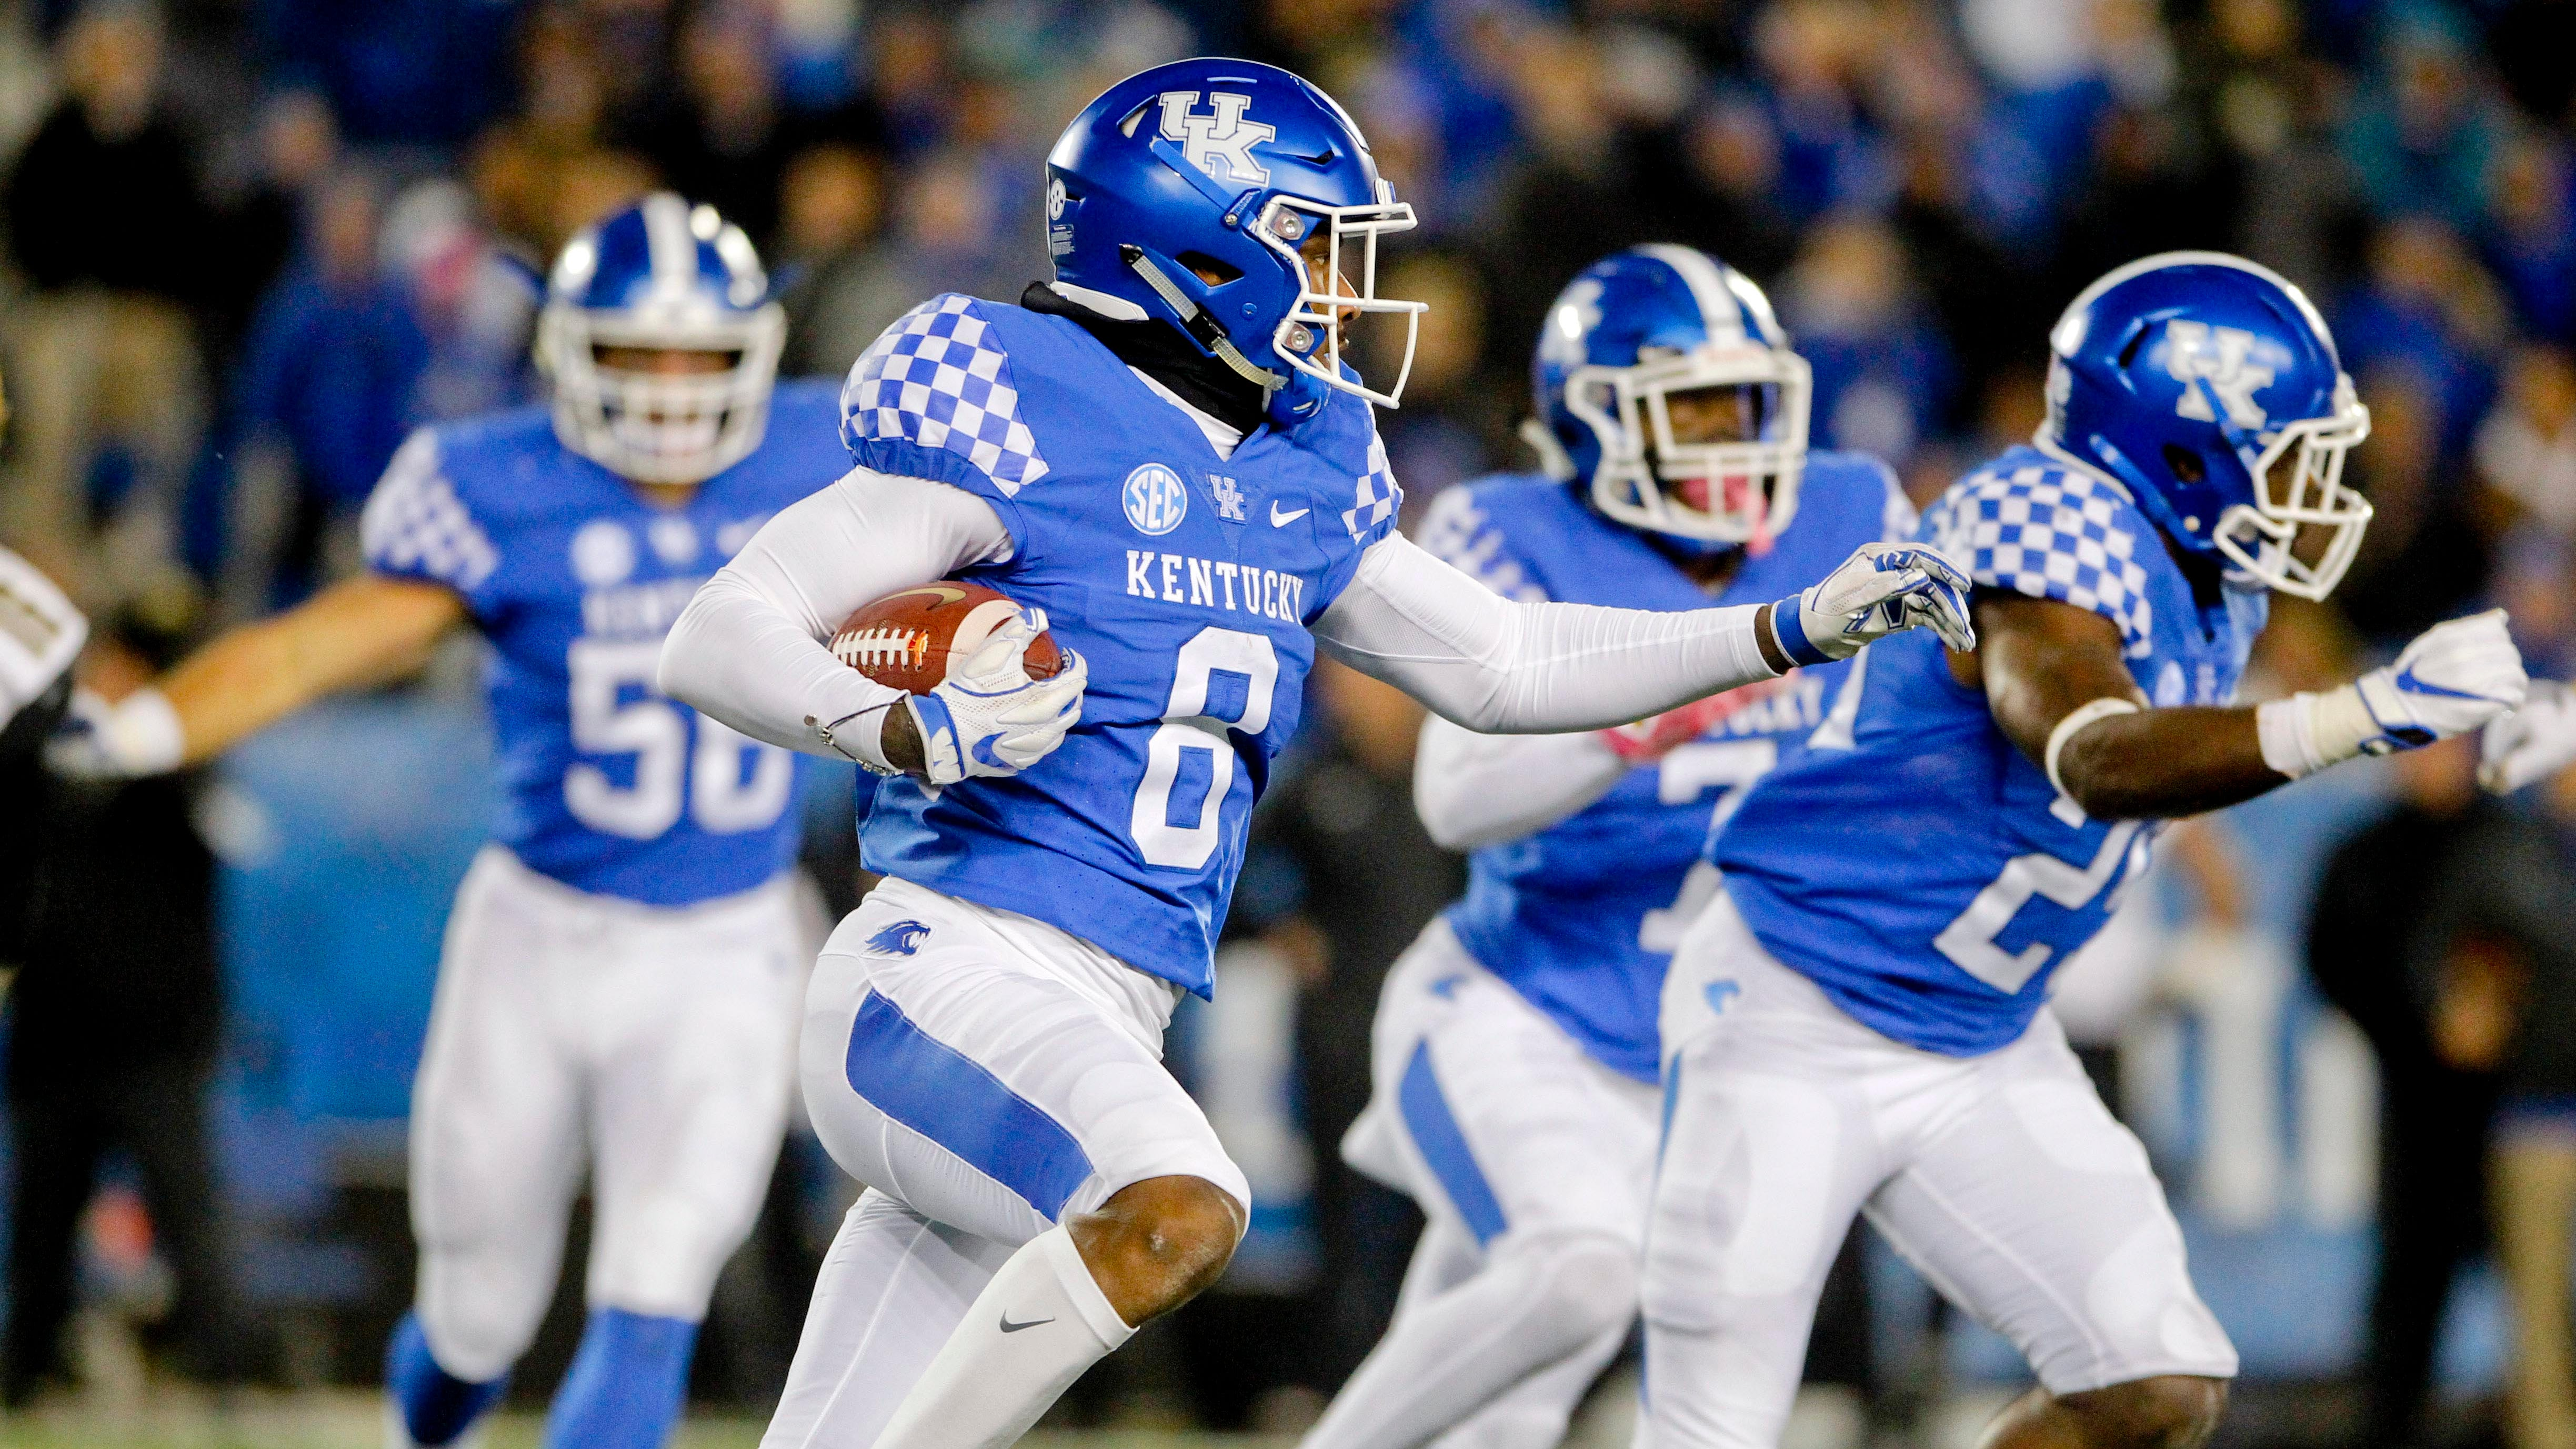 How To Watch Kentucky Missouri Football What Is The Game Time Tv